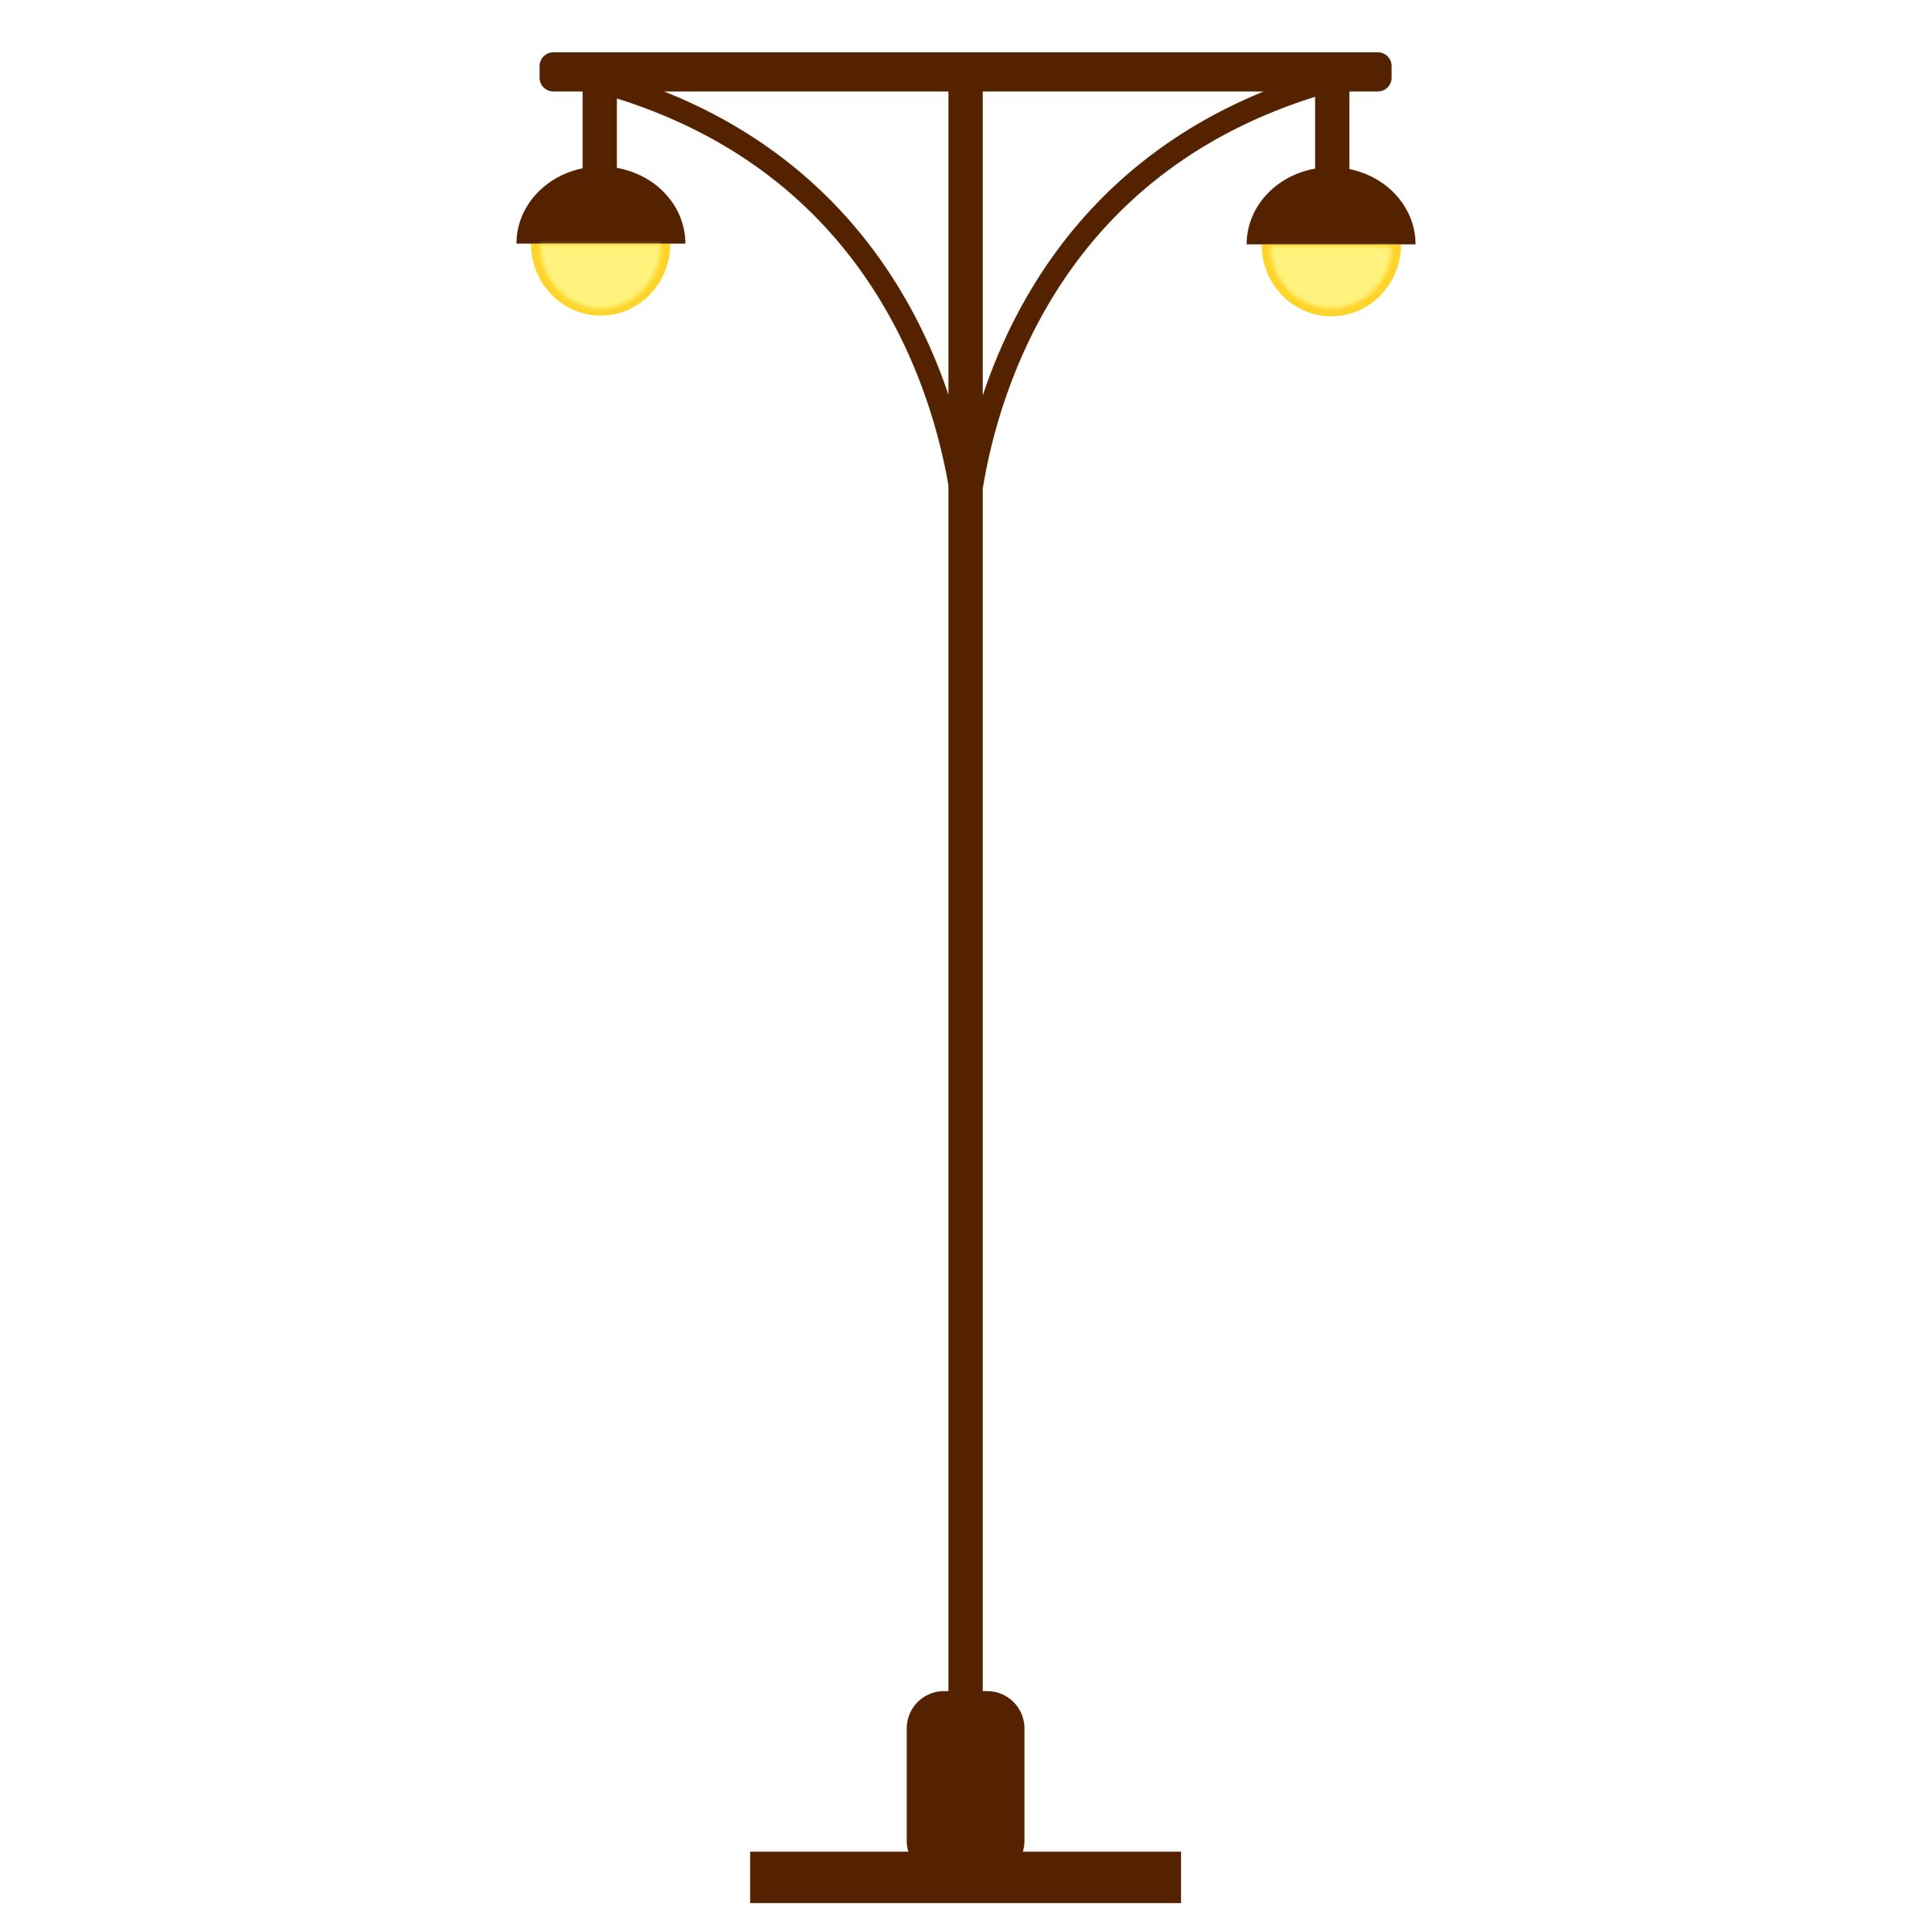 street light silhouette png